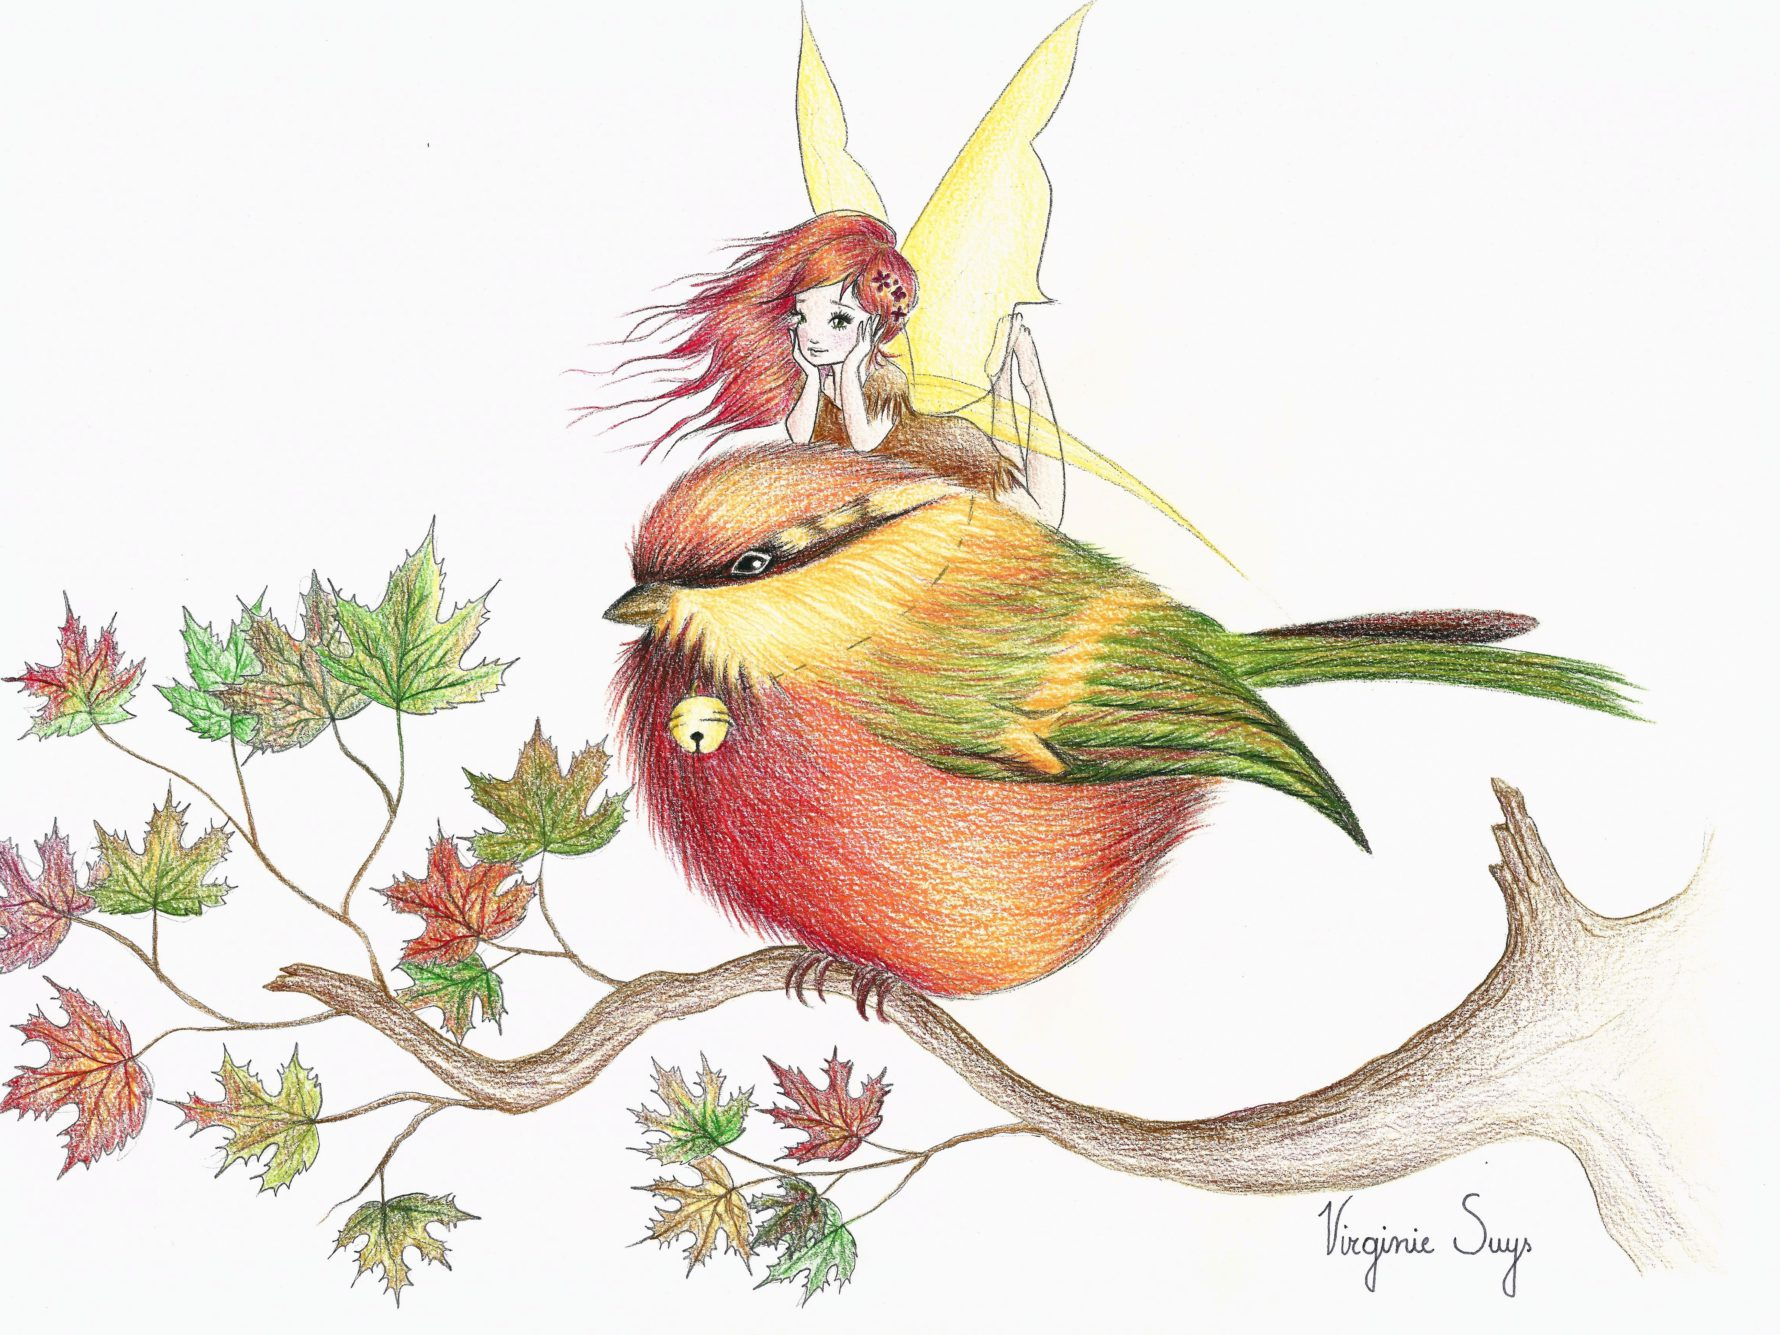 Virginie Suys Little red green bird & fairy illustration